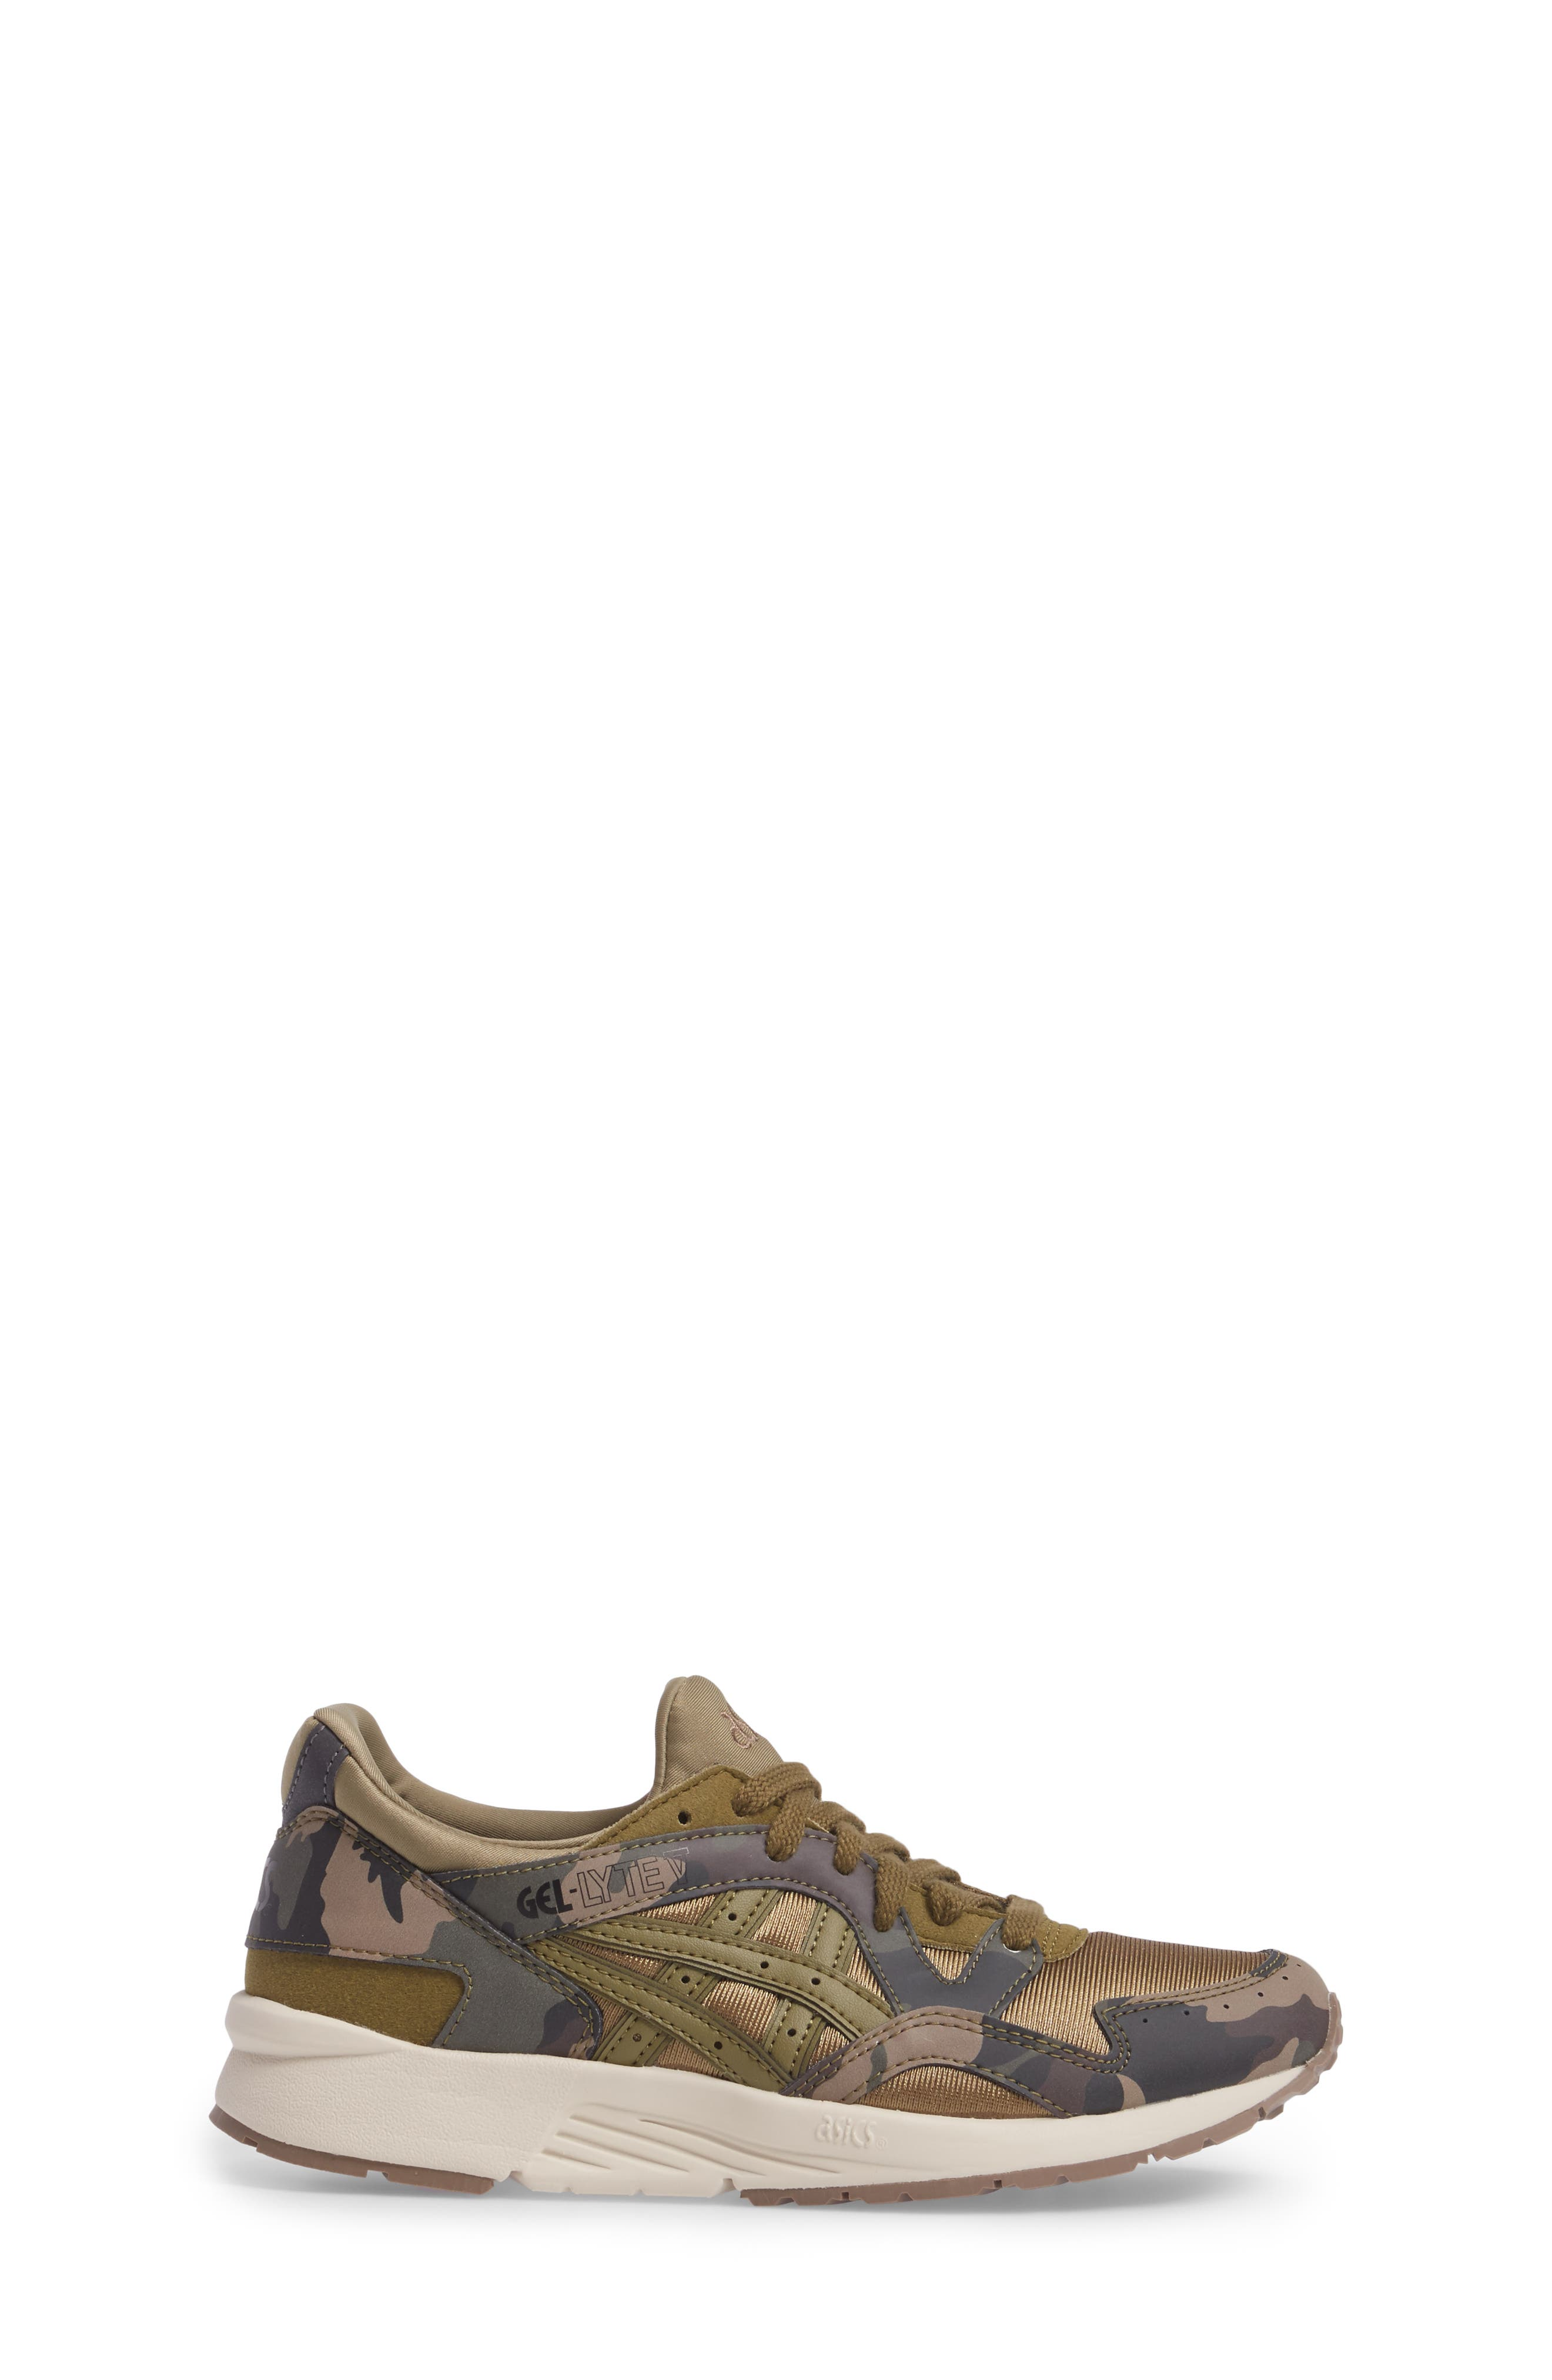 GEL-LYTE<sup>®</sup> V GS Sneaker,                             Alternate thumbnail 3, color,                             Martini Olive/ Martini Olive